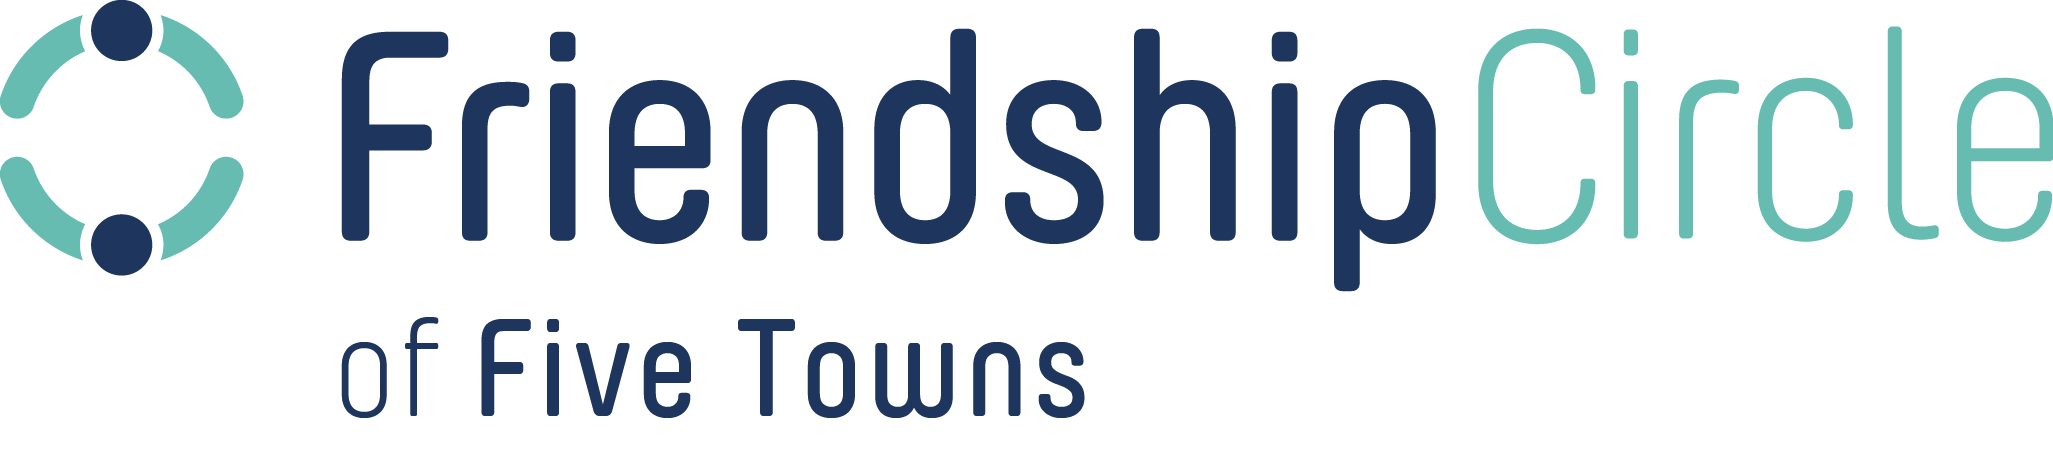 Wordmark 5 towns PNG Full Color (1).png